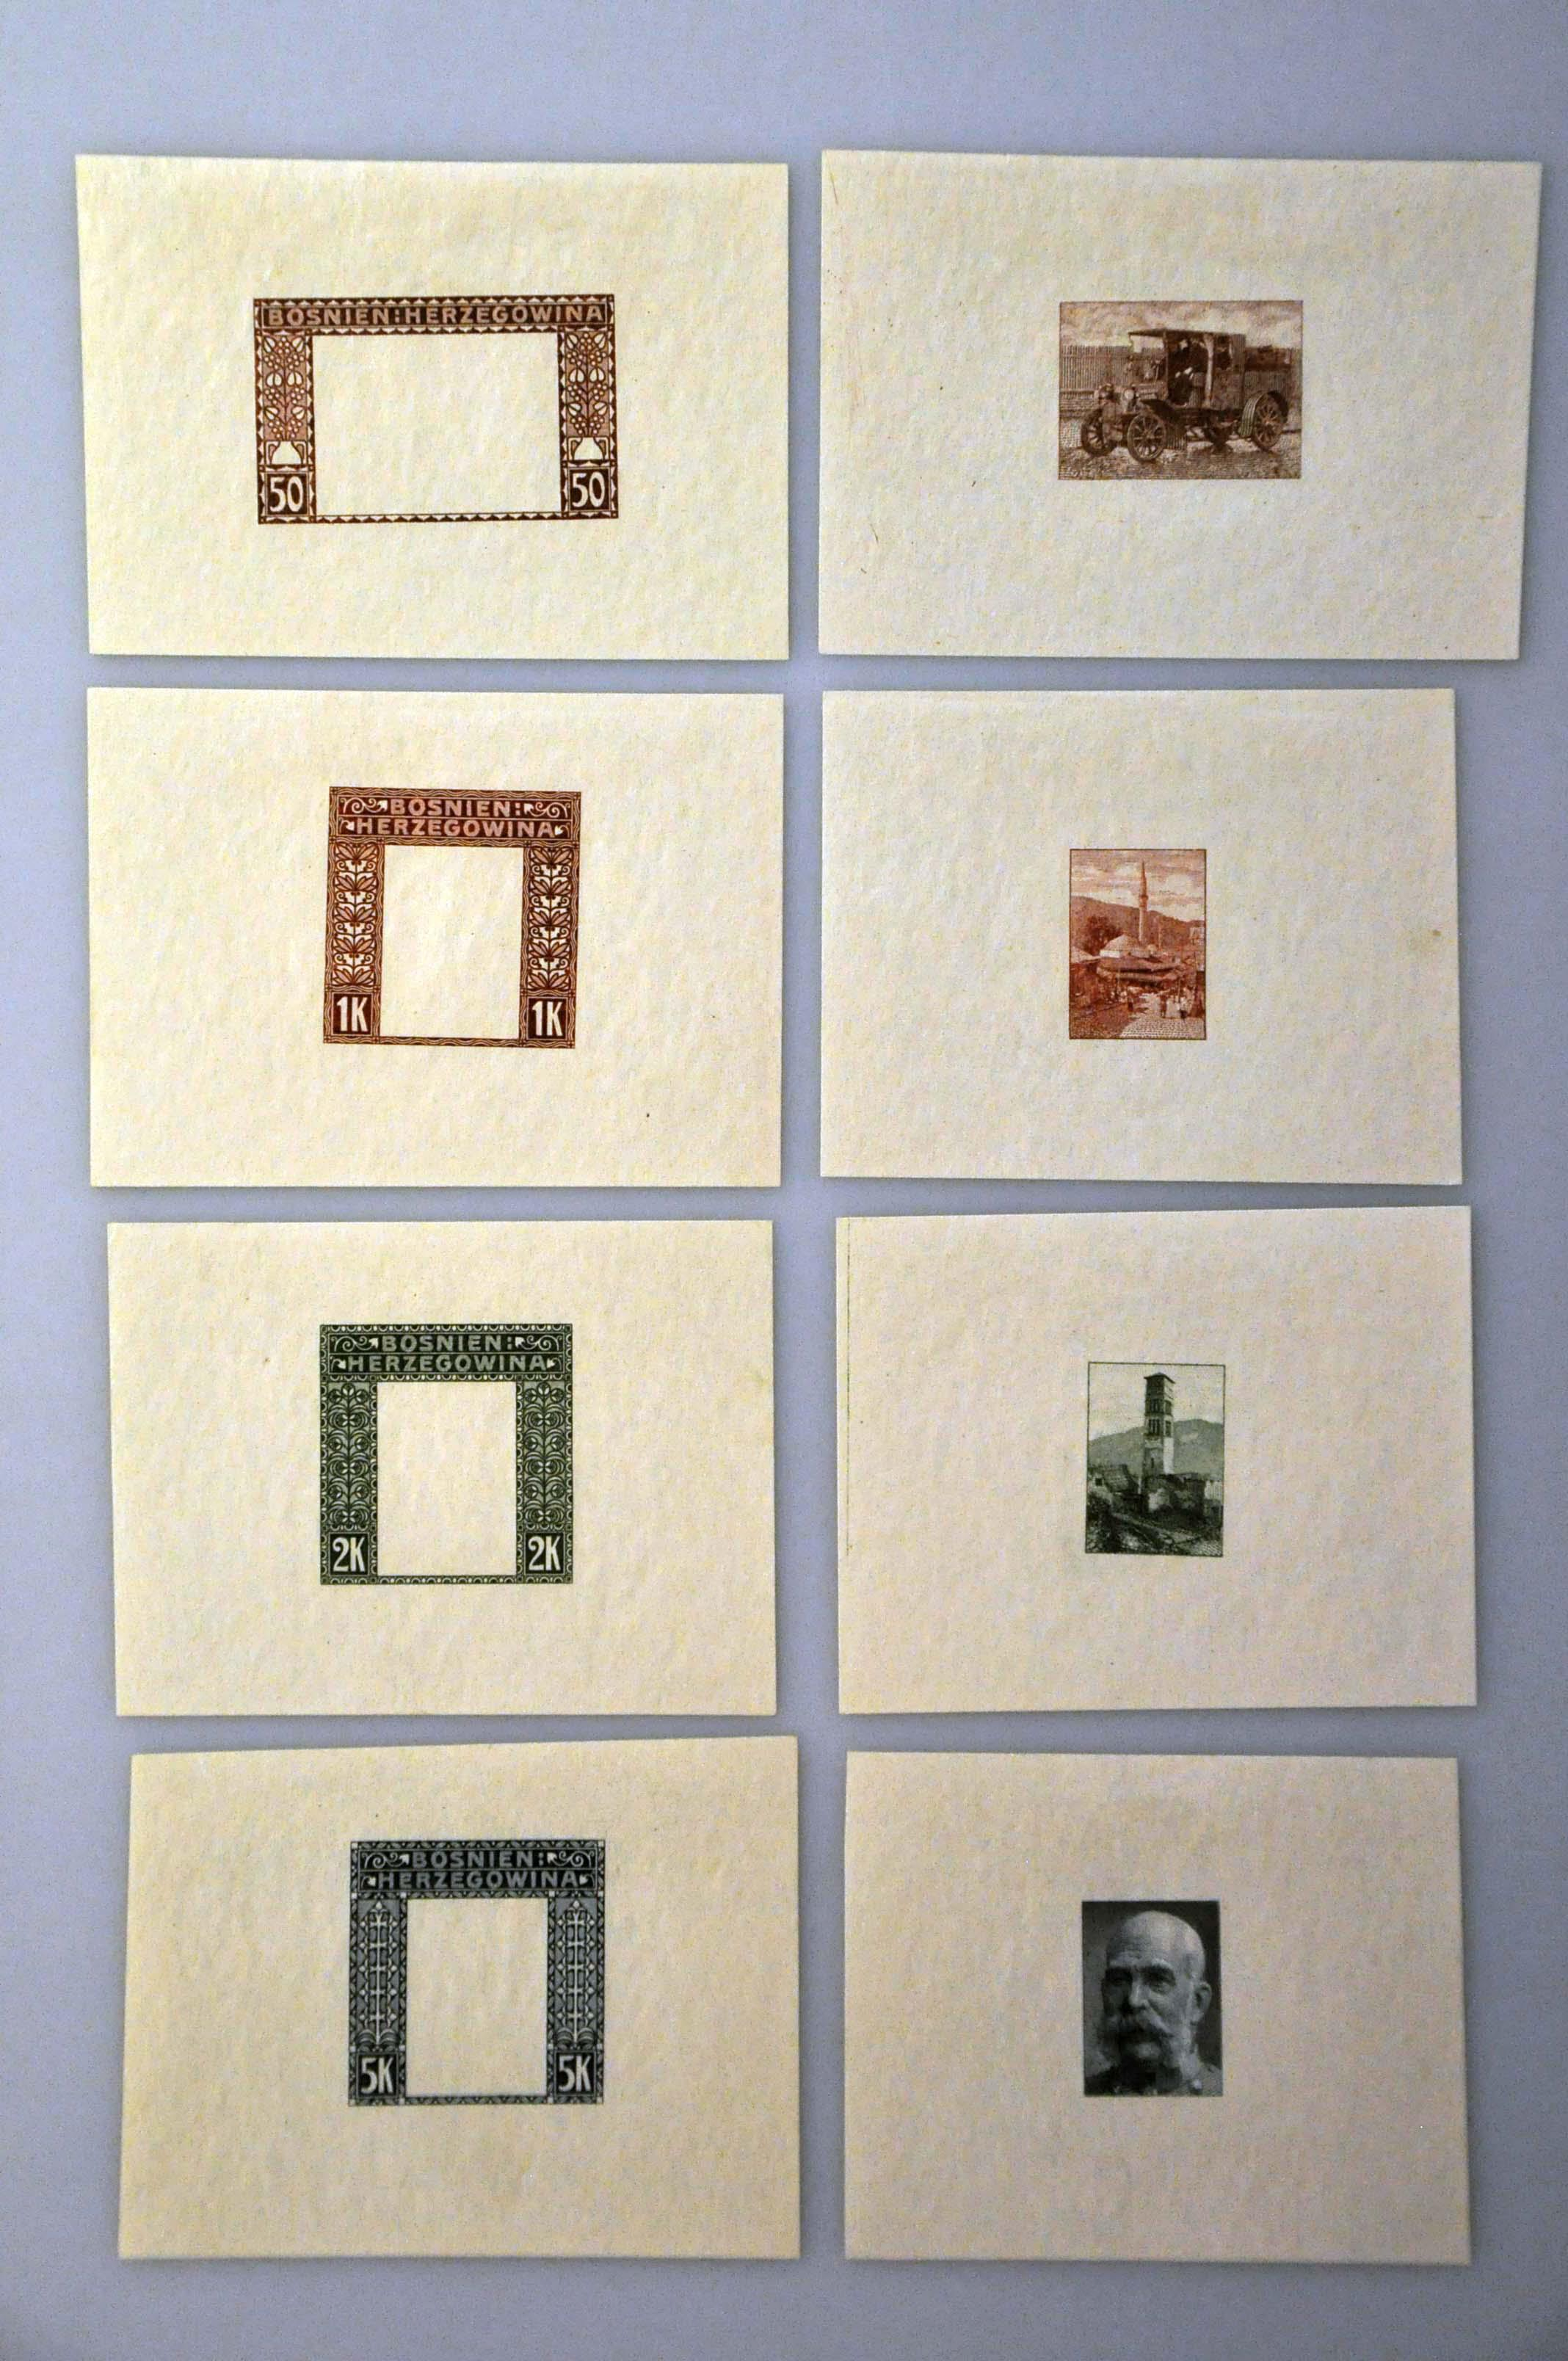 Lot 22 - Austria and former territories Bosnia and Herzegowina (Austrian) -  Corinphila Veilingen Auction 244 -Netherlands and former colonies, WW2 Postal History, Bosnia, German and British colonies, Egypt. - Day 1